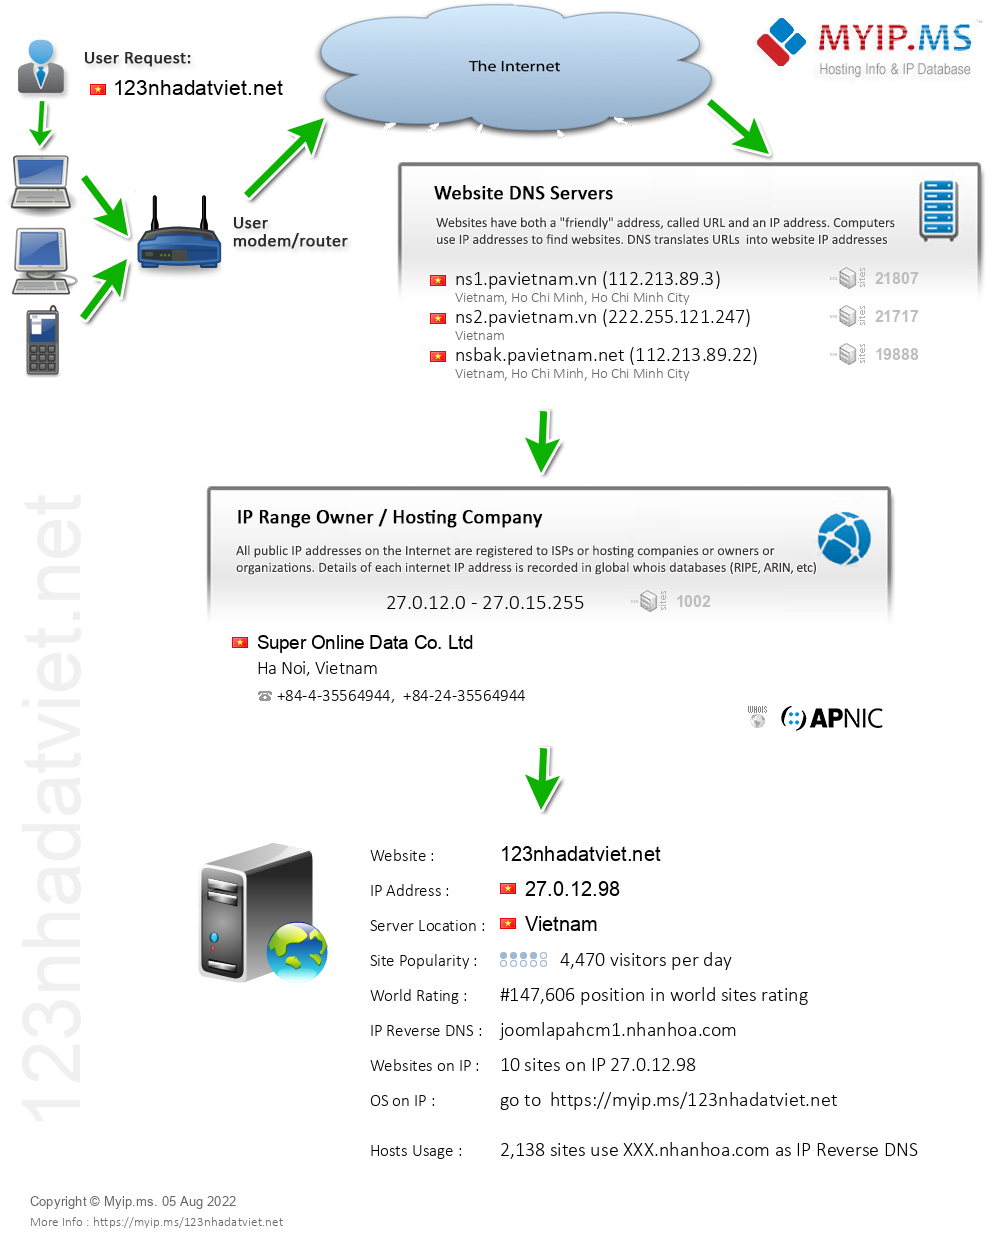 123nhadatviet.net - Website Hosting Visual IP Diagram